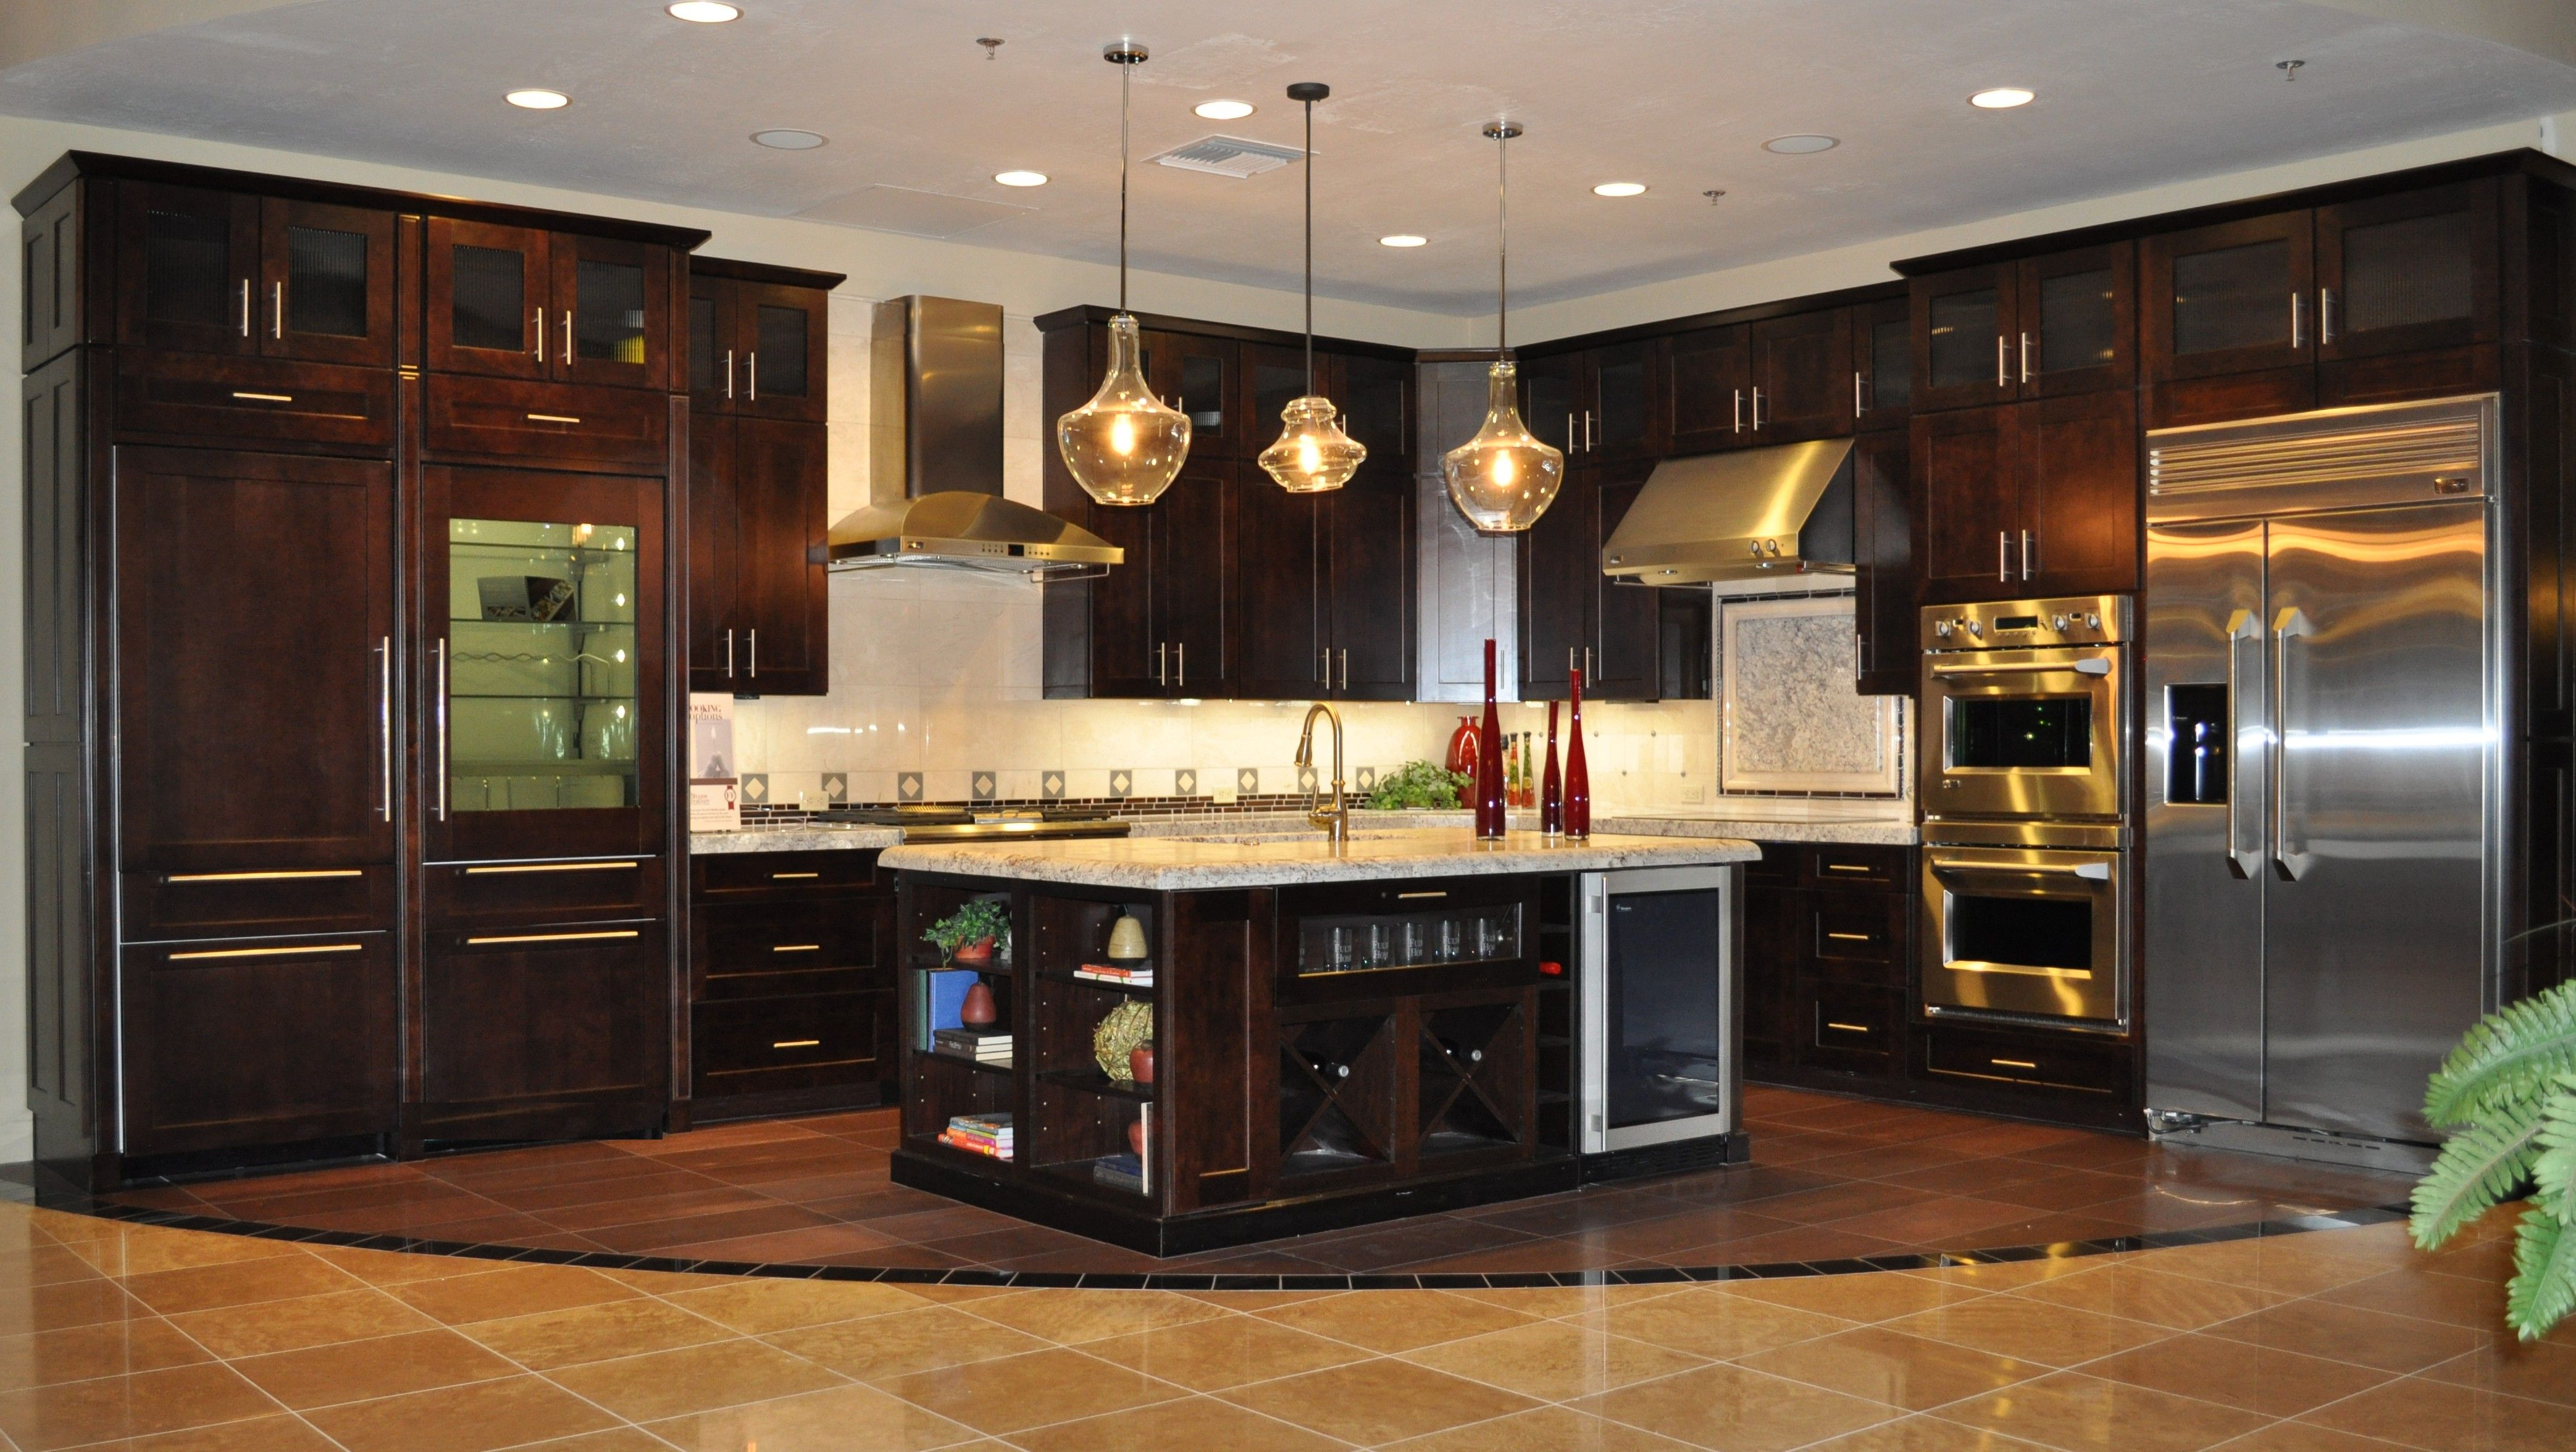 kitchens with dark cabinets and light countertops. These 20 Beautiful Kitchens Have Luxurious Dark Kitchen Cabinets That Will Convince You To Go Get A Cherry Or Espresso Cabinet Stain Right Away! With And Light Countertops